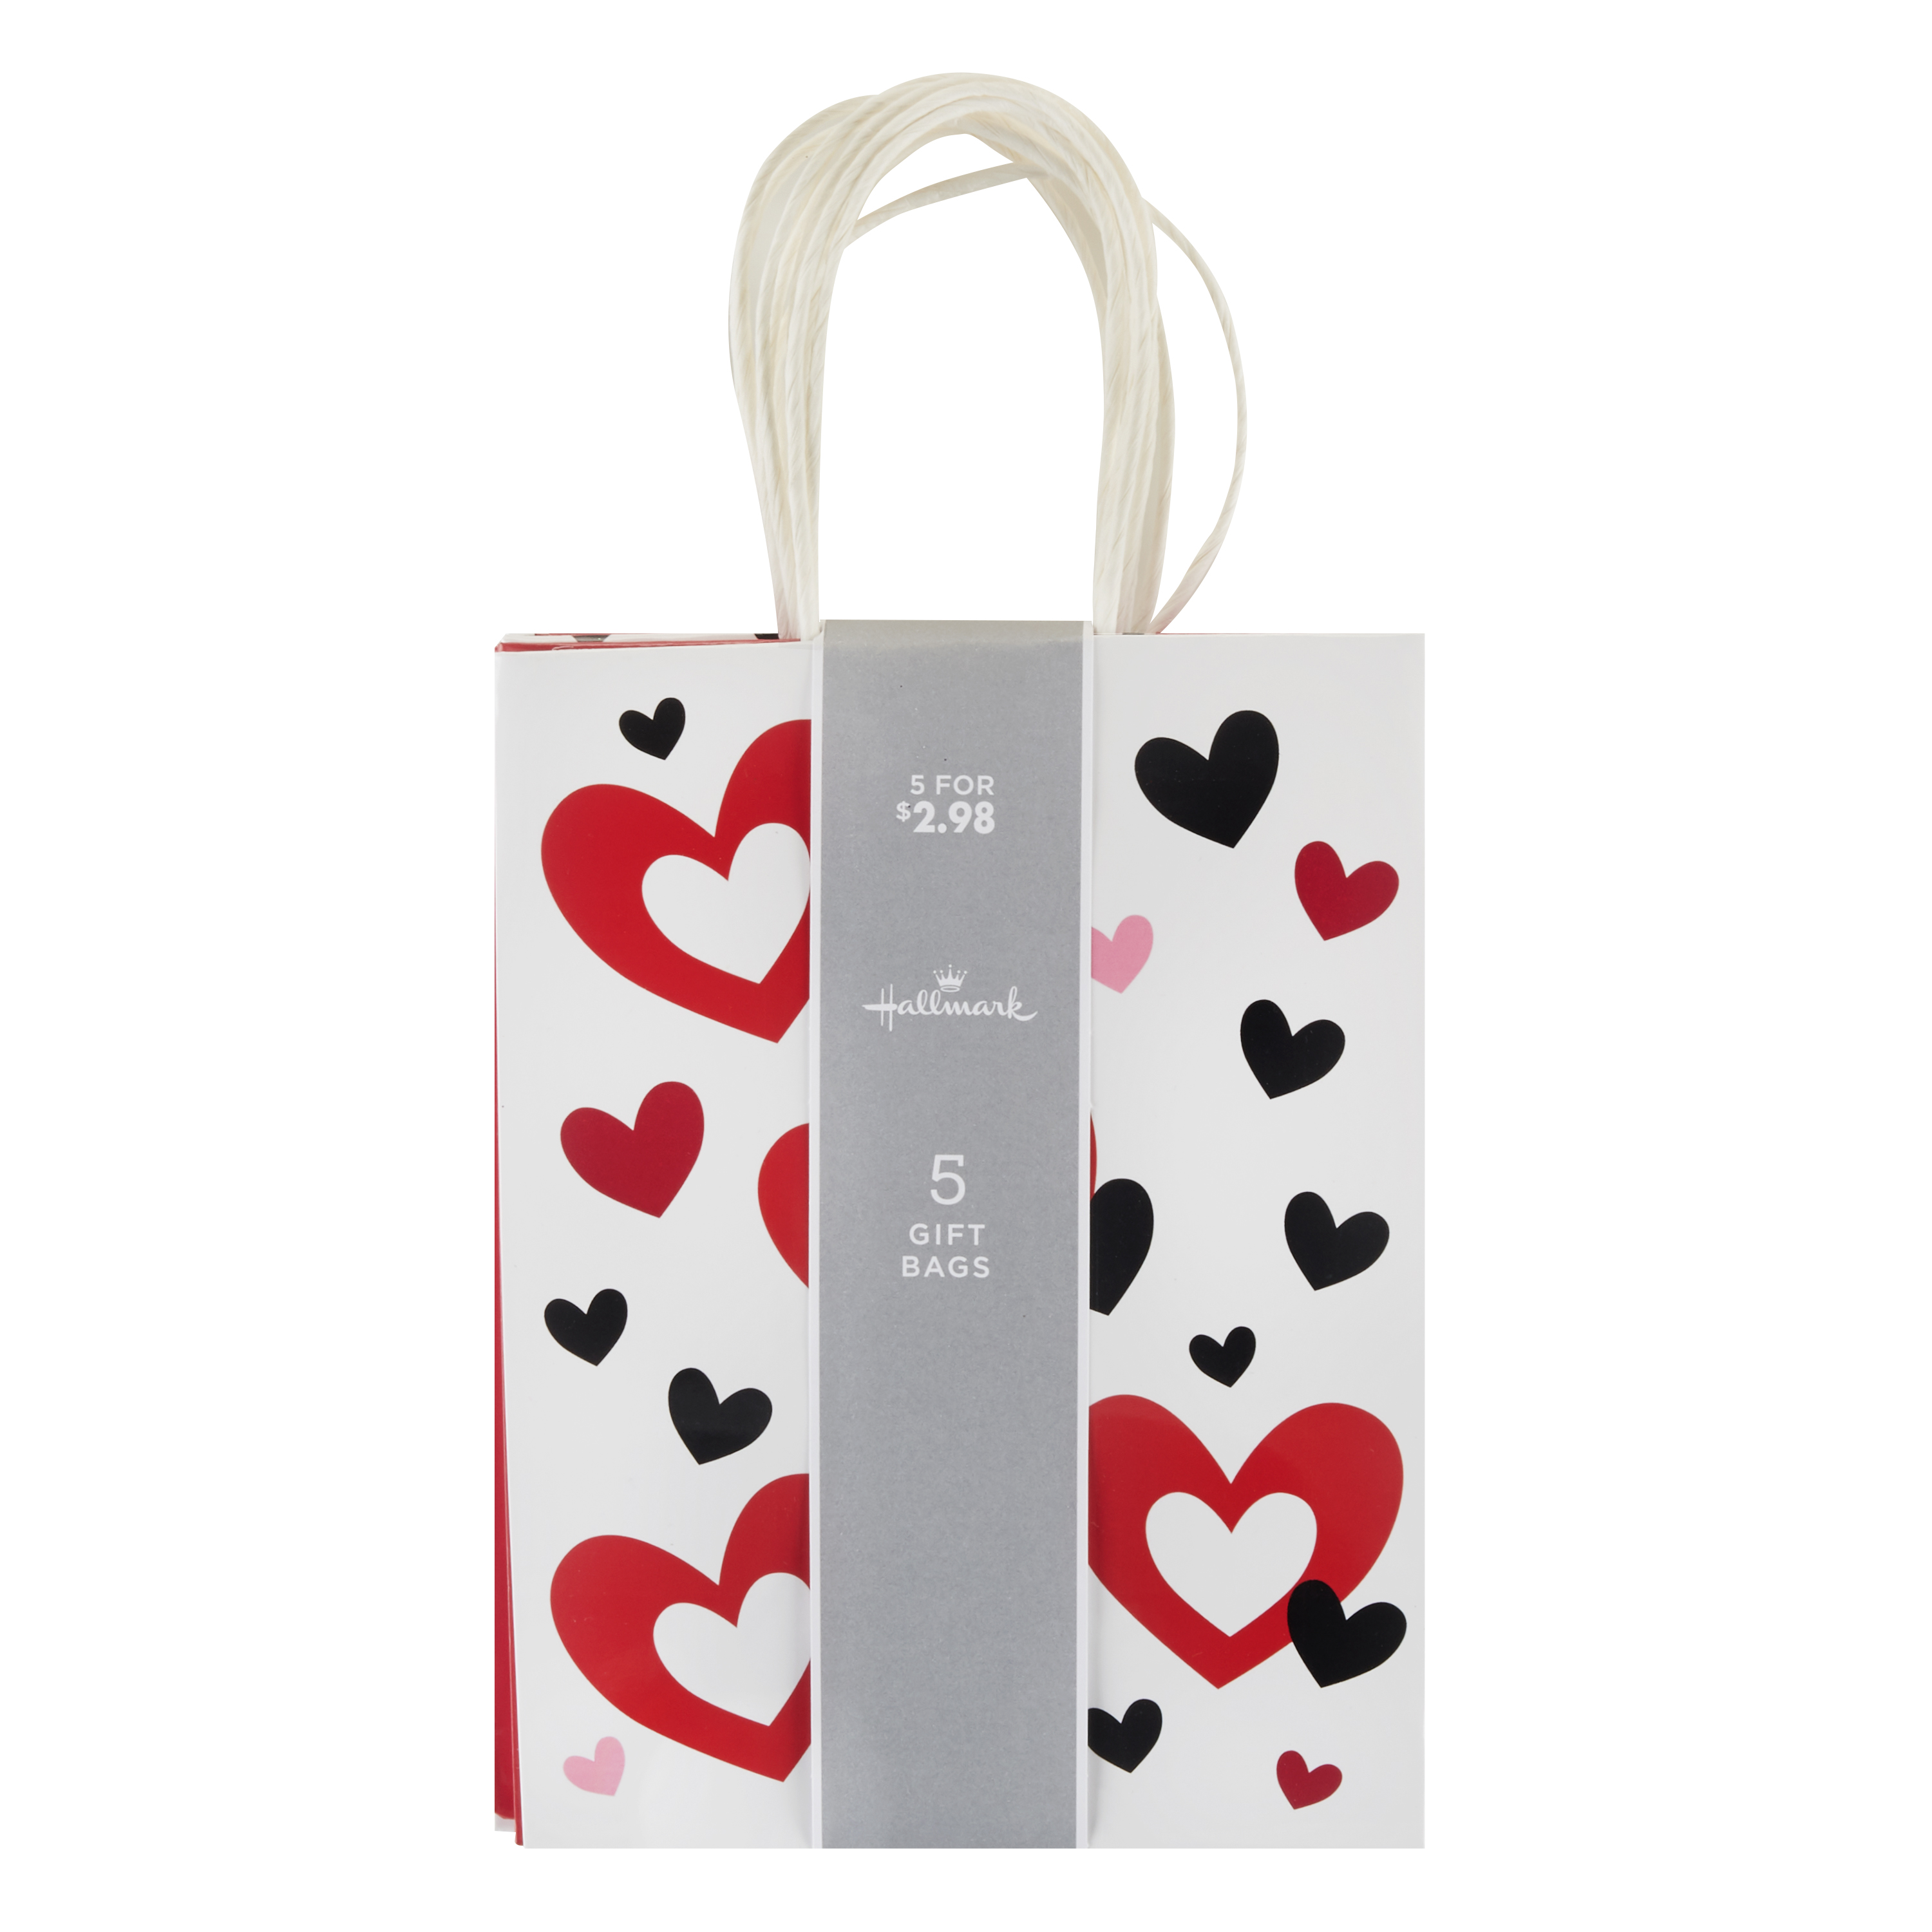 Hallmark Small Valentine's Day Gift Bags Assortment (Valentine Hearts, Pack of 5)